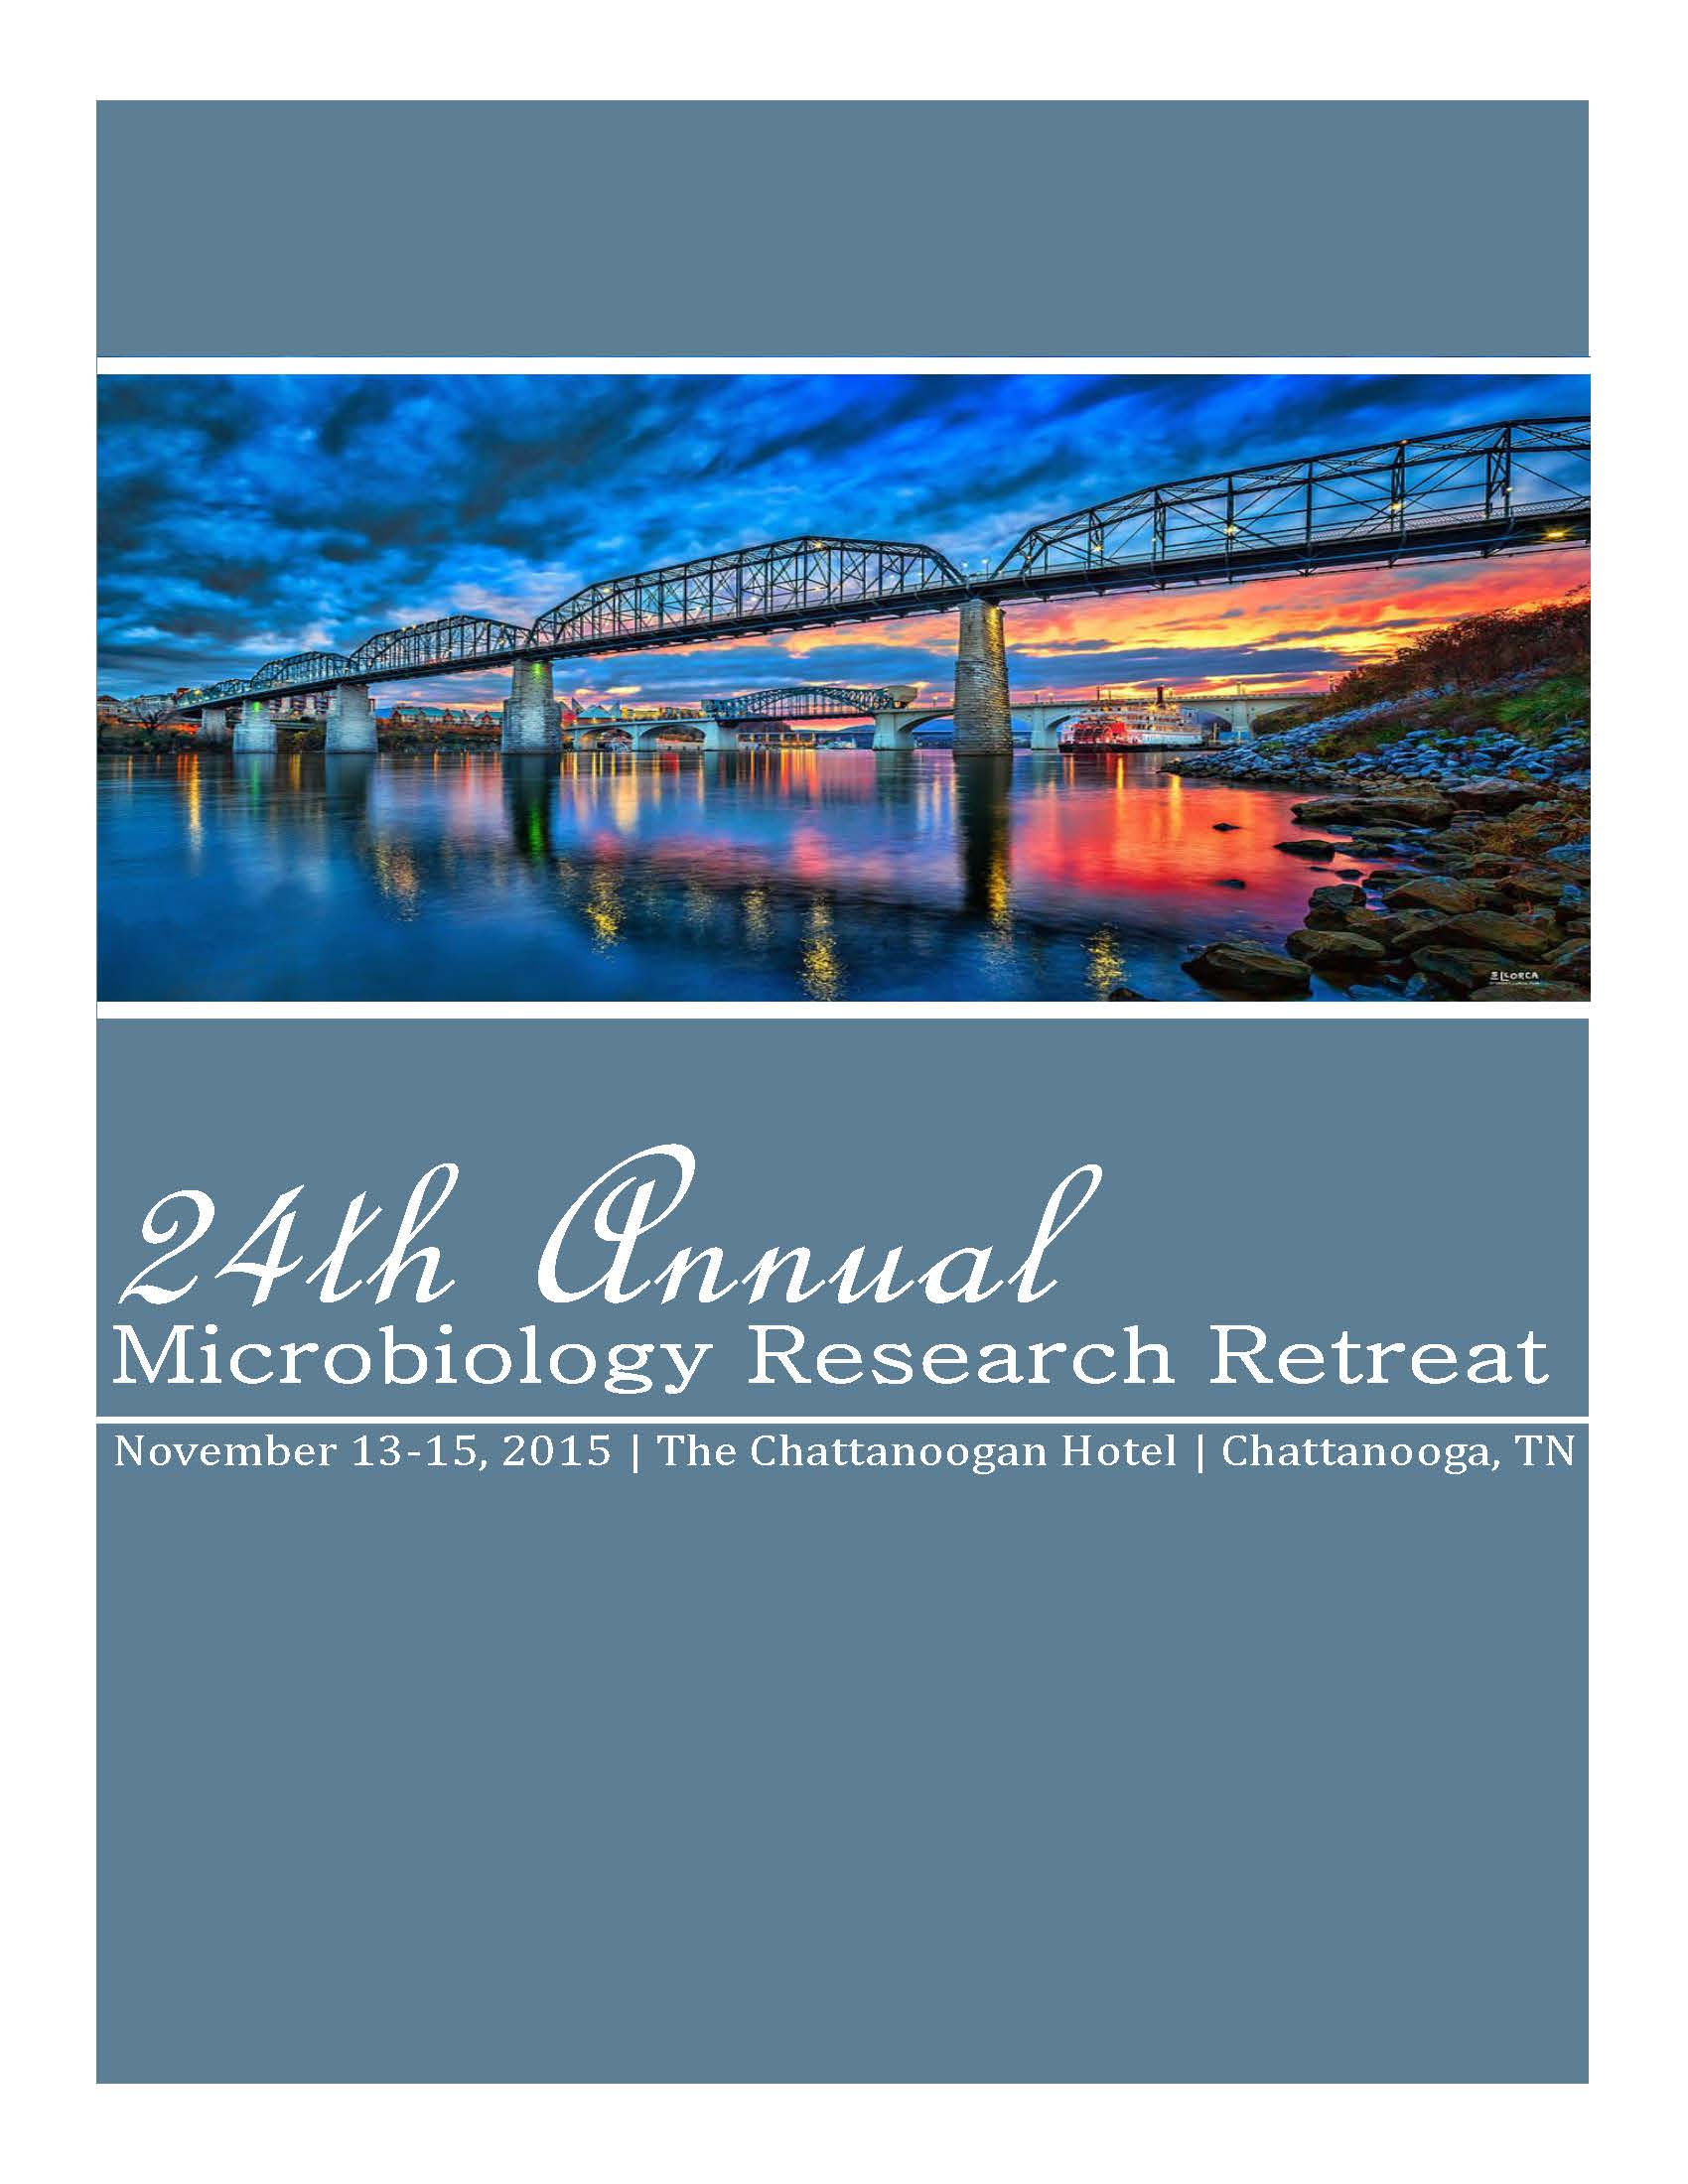 2015 retreat booklet cover